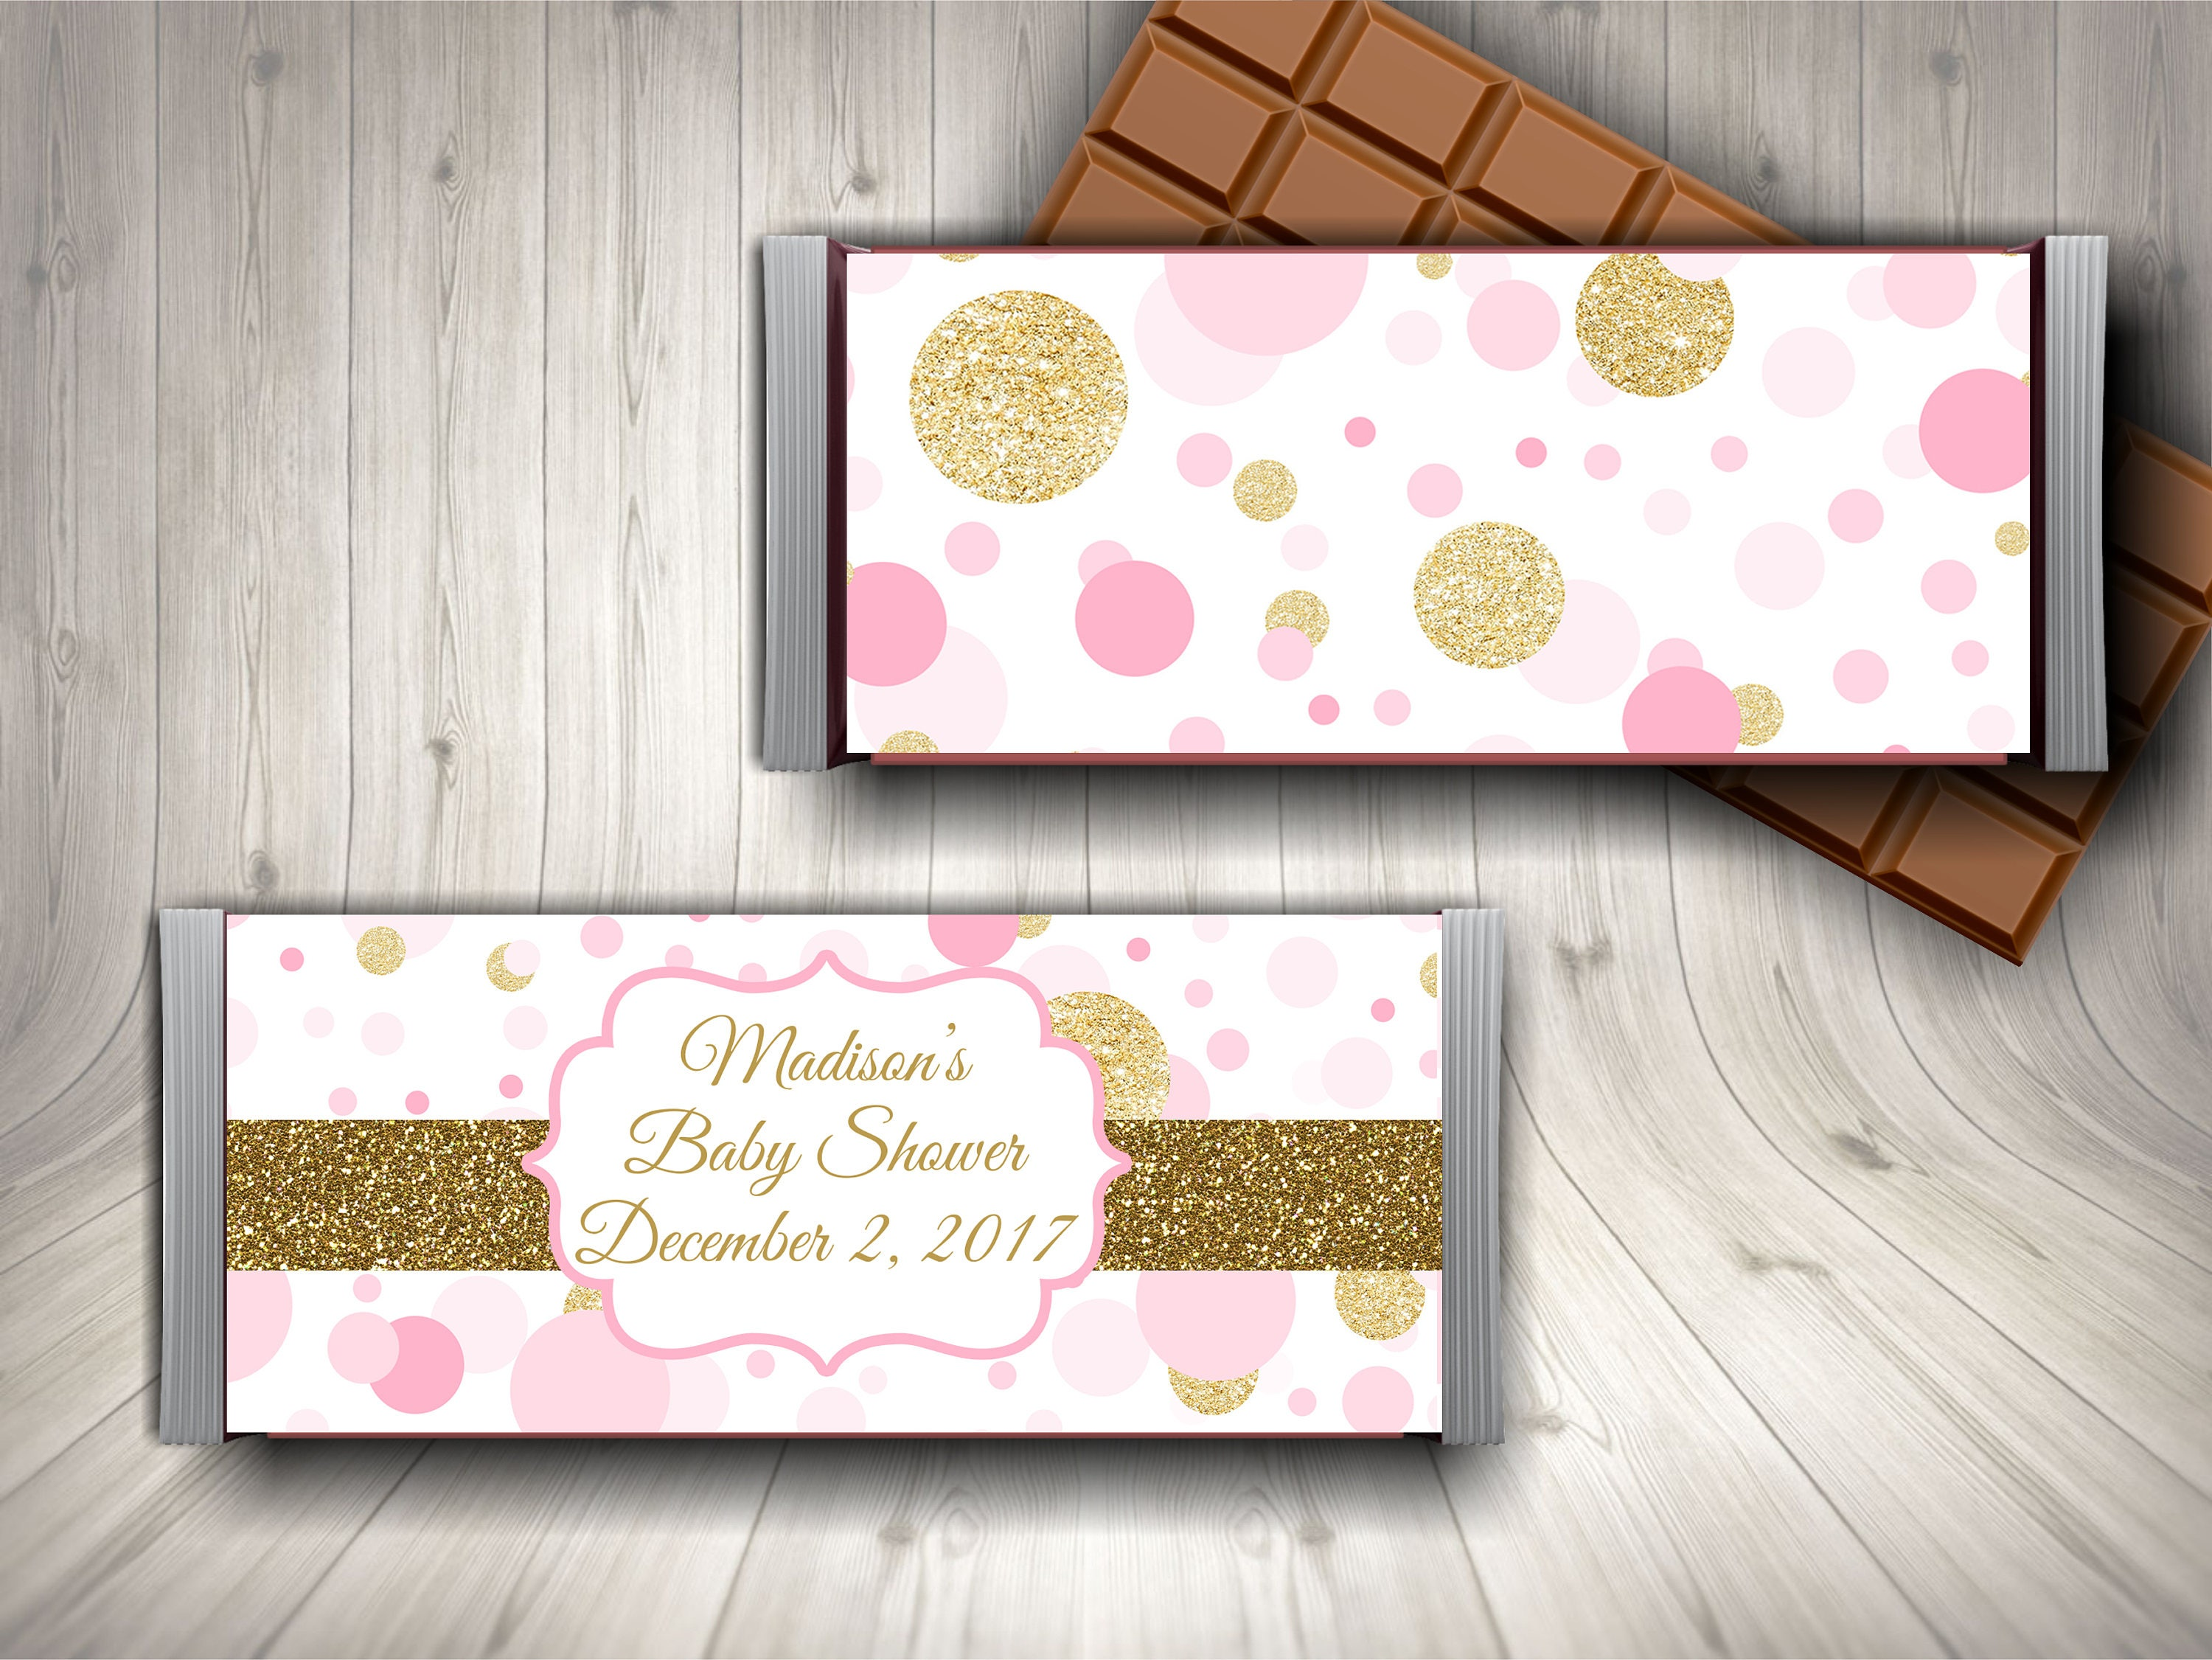 Chocolate Bar Wrapper Candy Bar Wrapper Baby Shower Candy